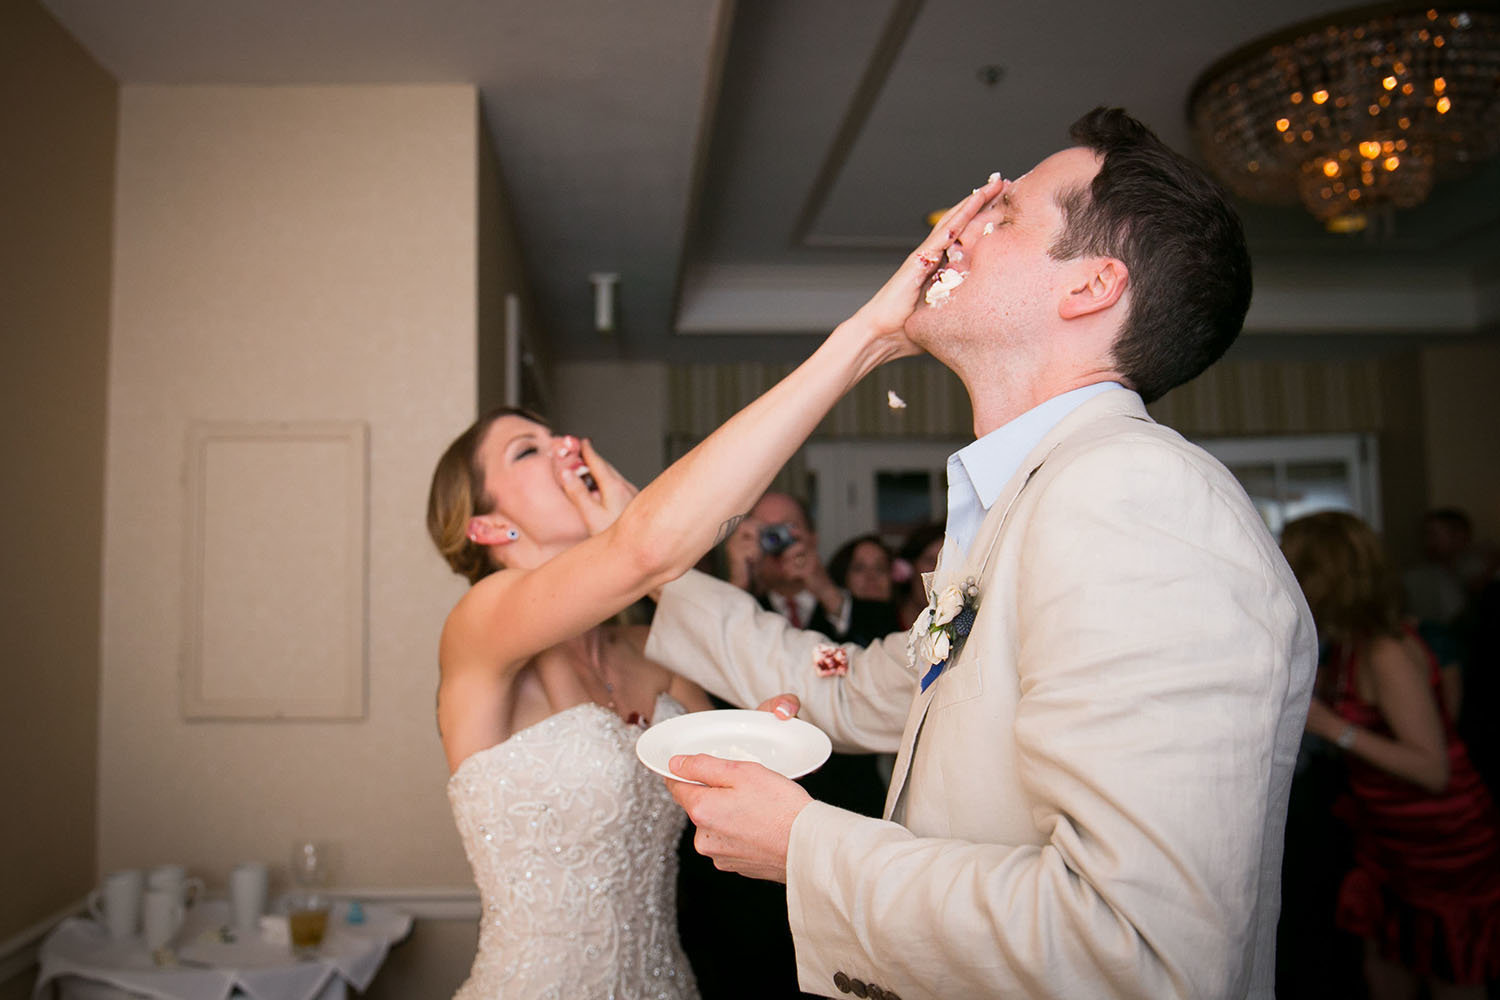 Cake smash at the wedding reception | L'Auberge Del Mar